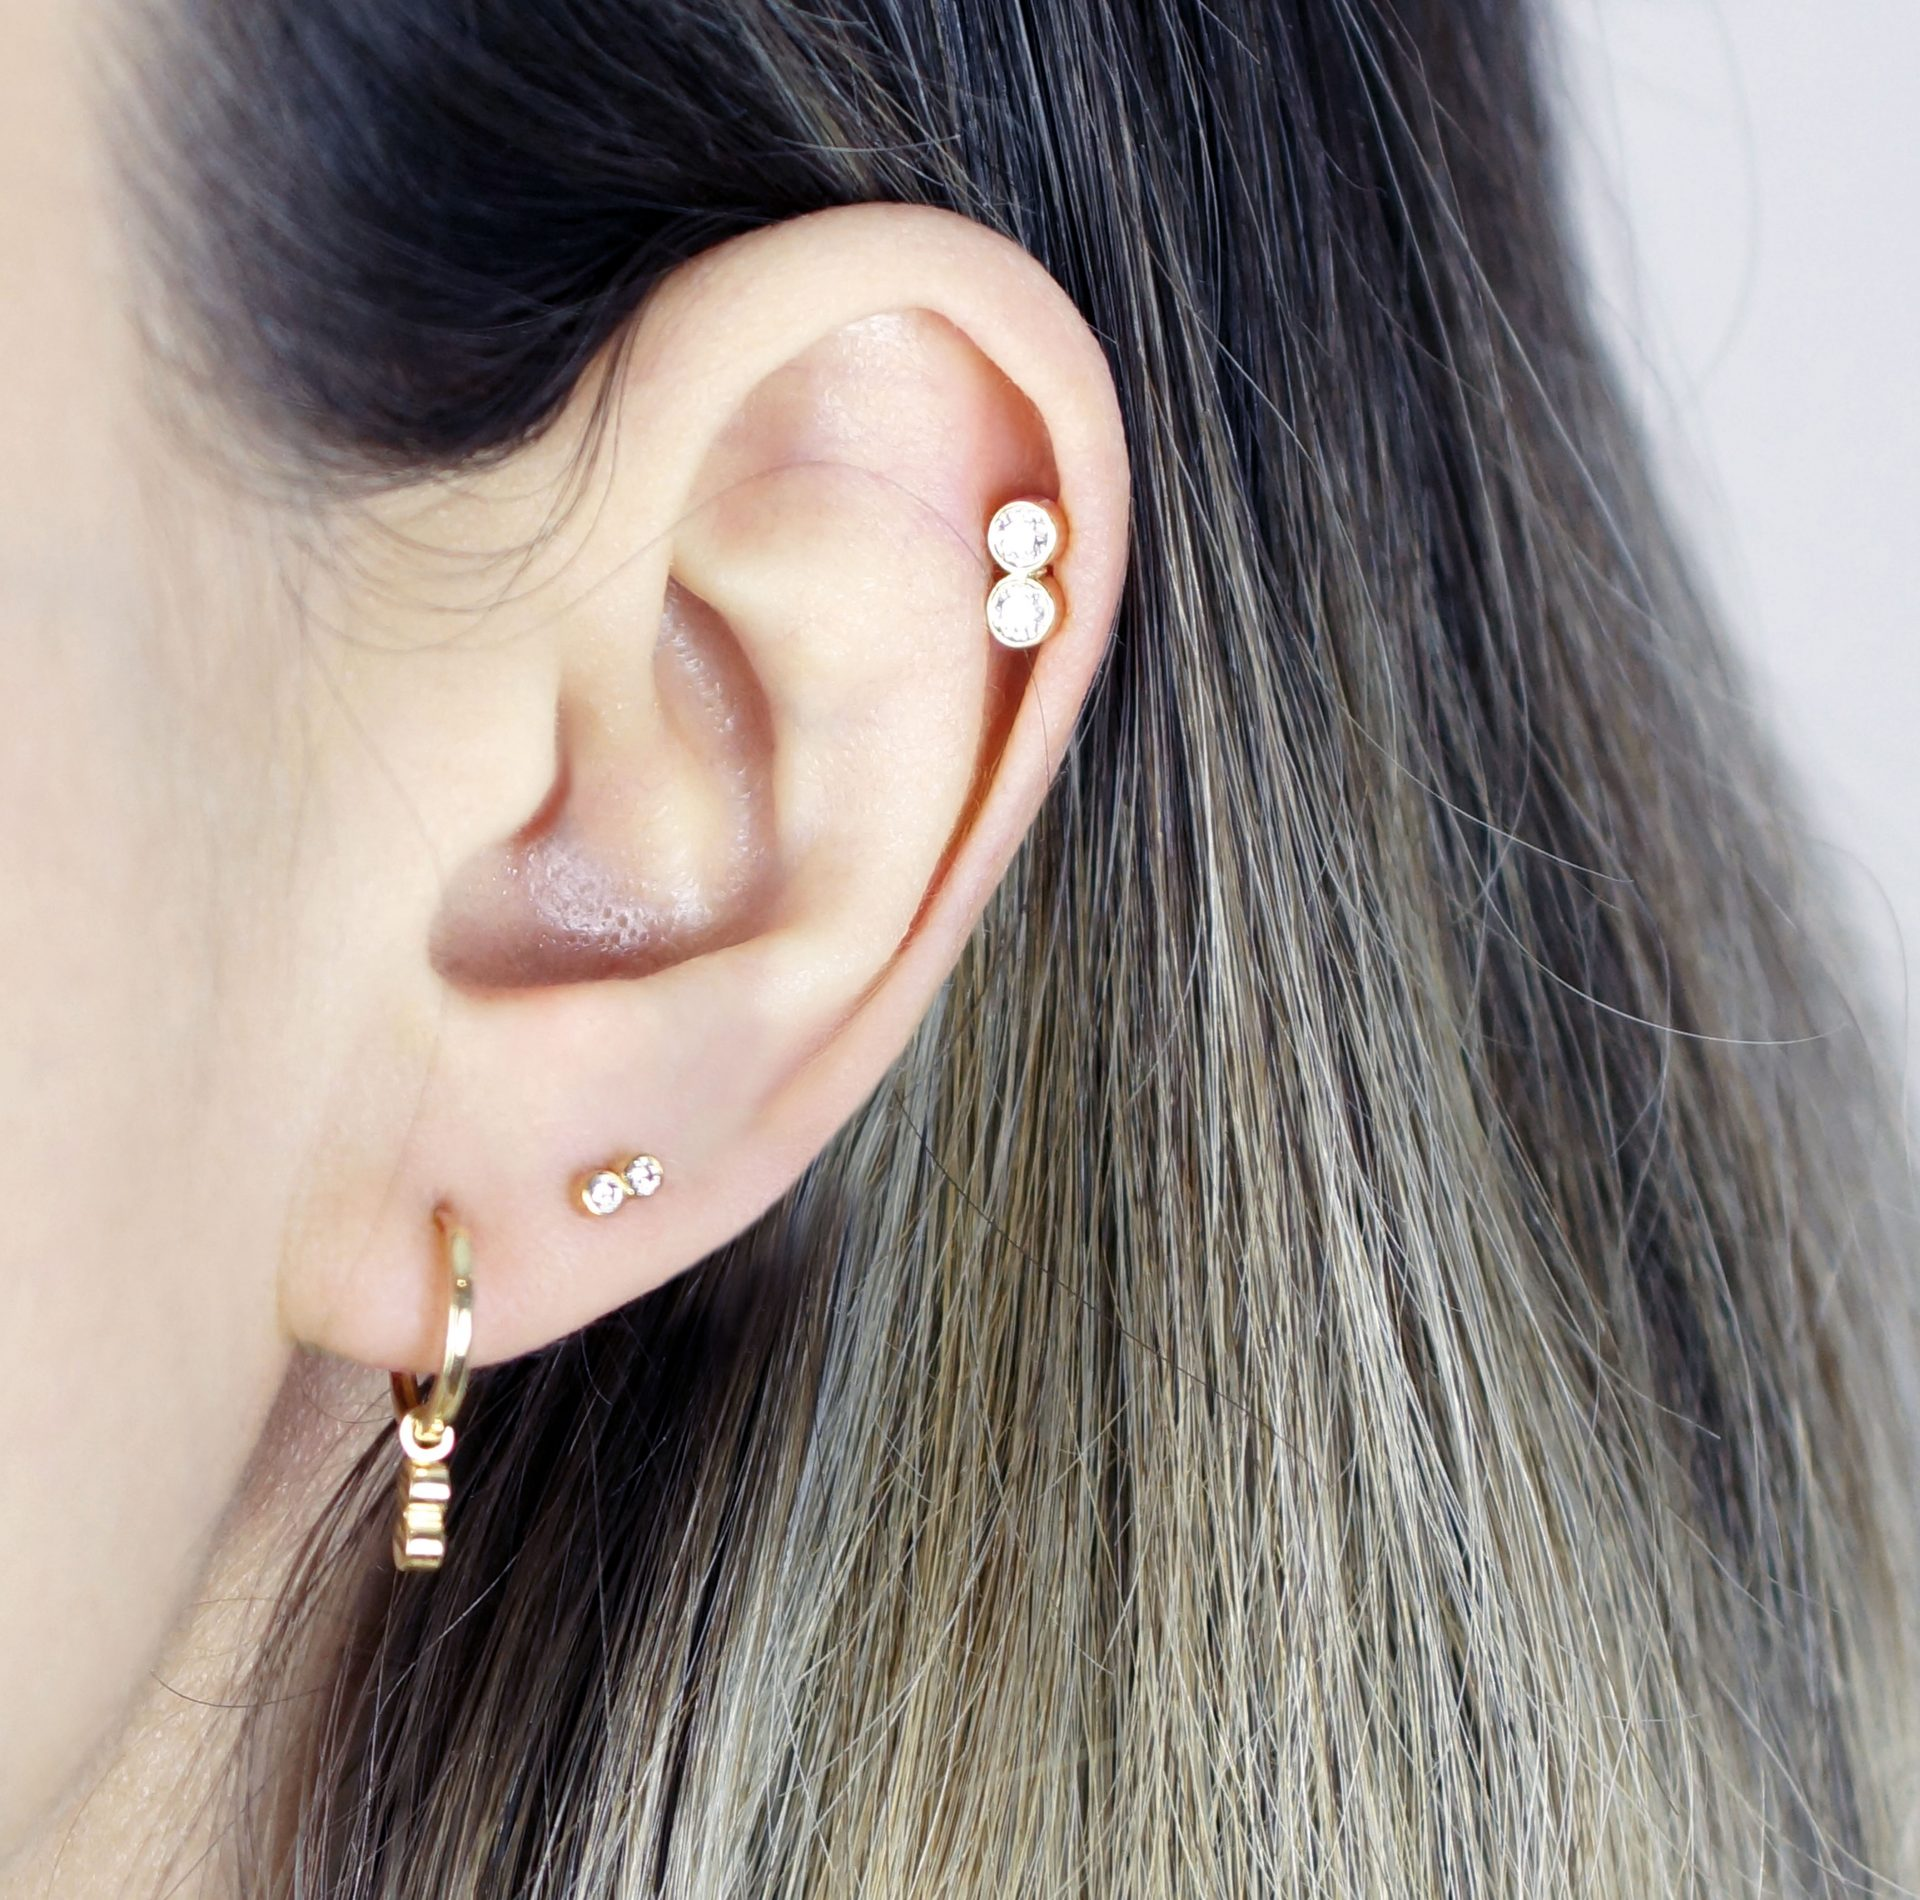 Multiple piercings worn with different types of earrings in an elegant manner is a perfect example of a classy but yet modern ear styling.